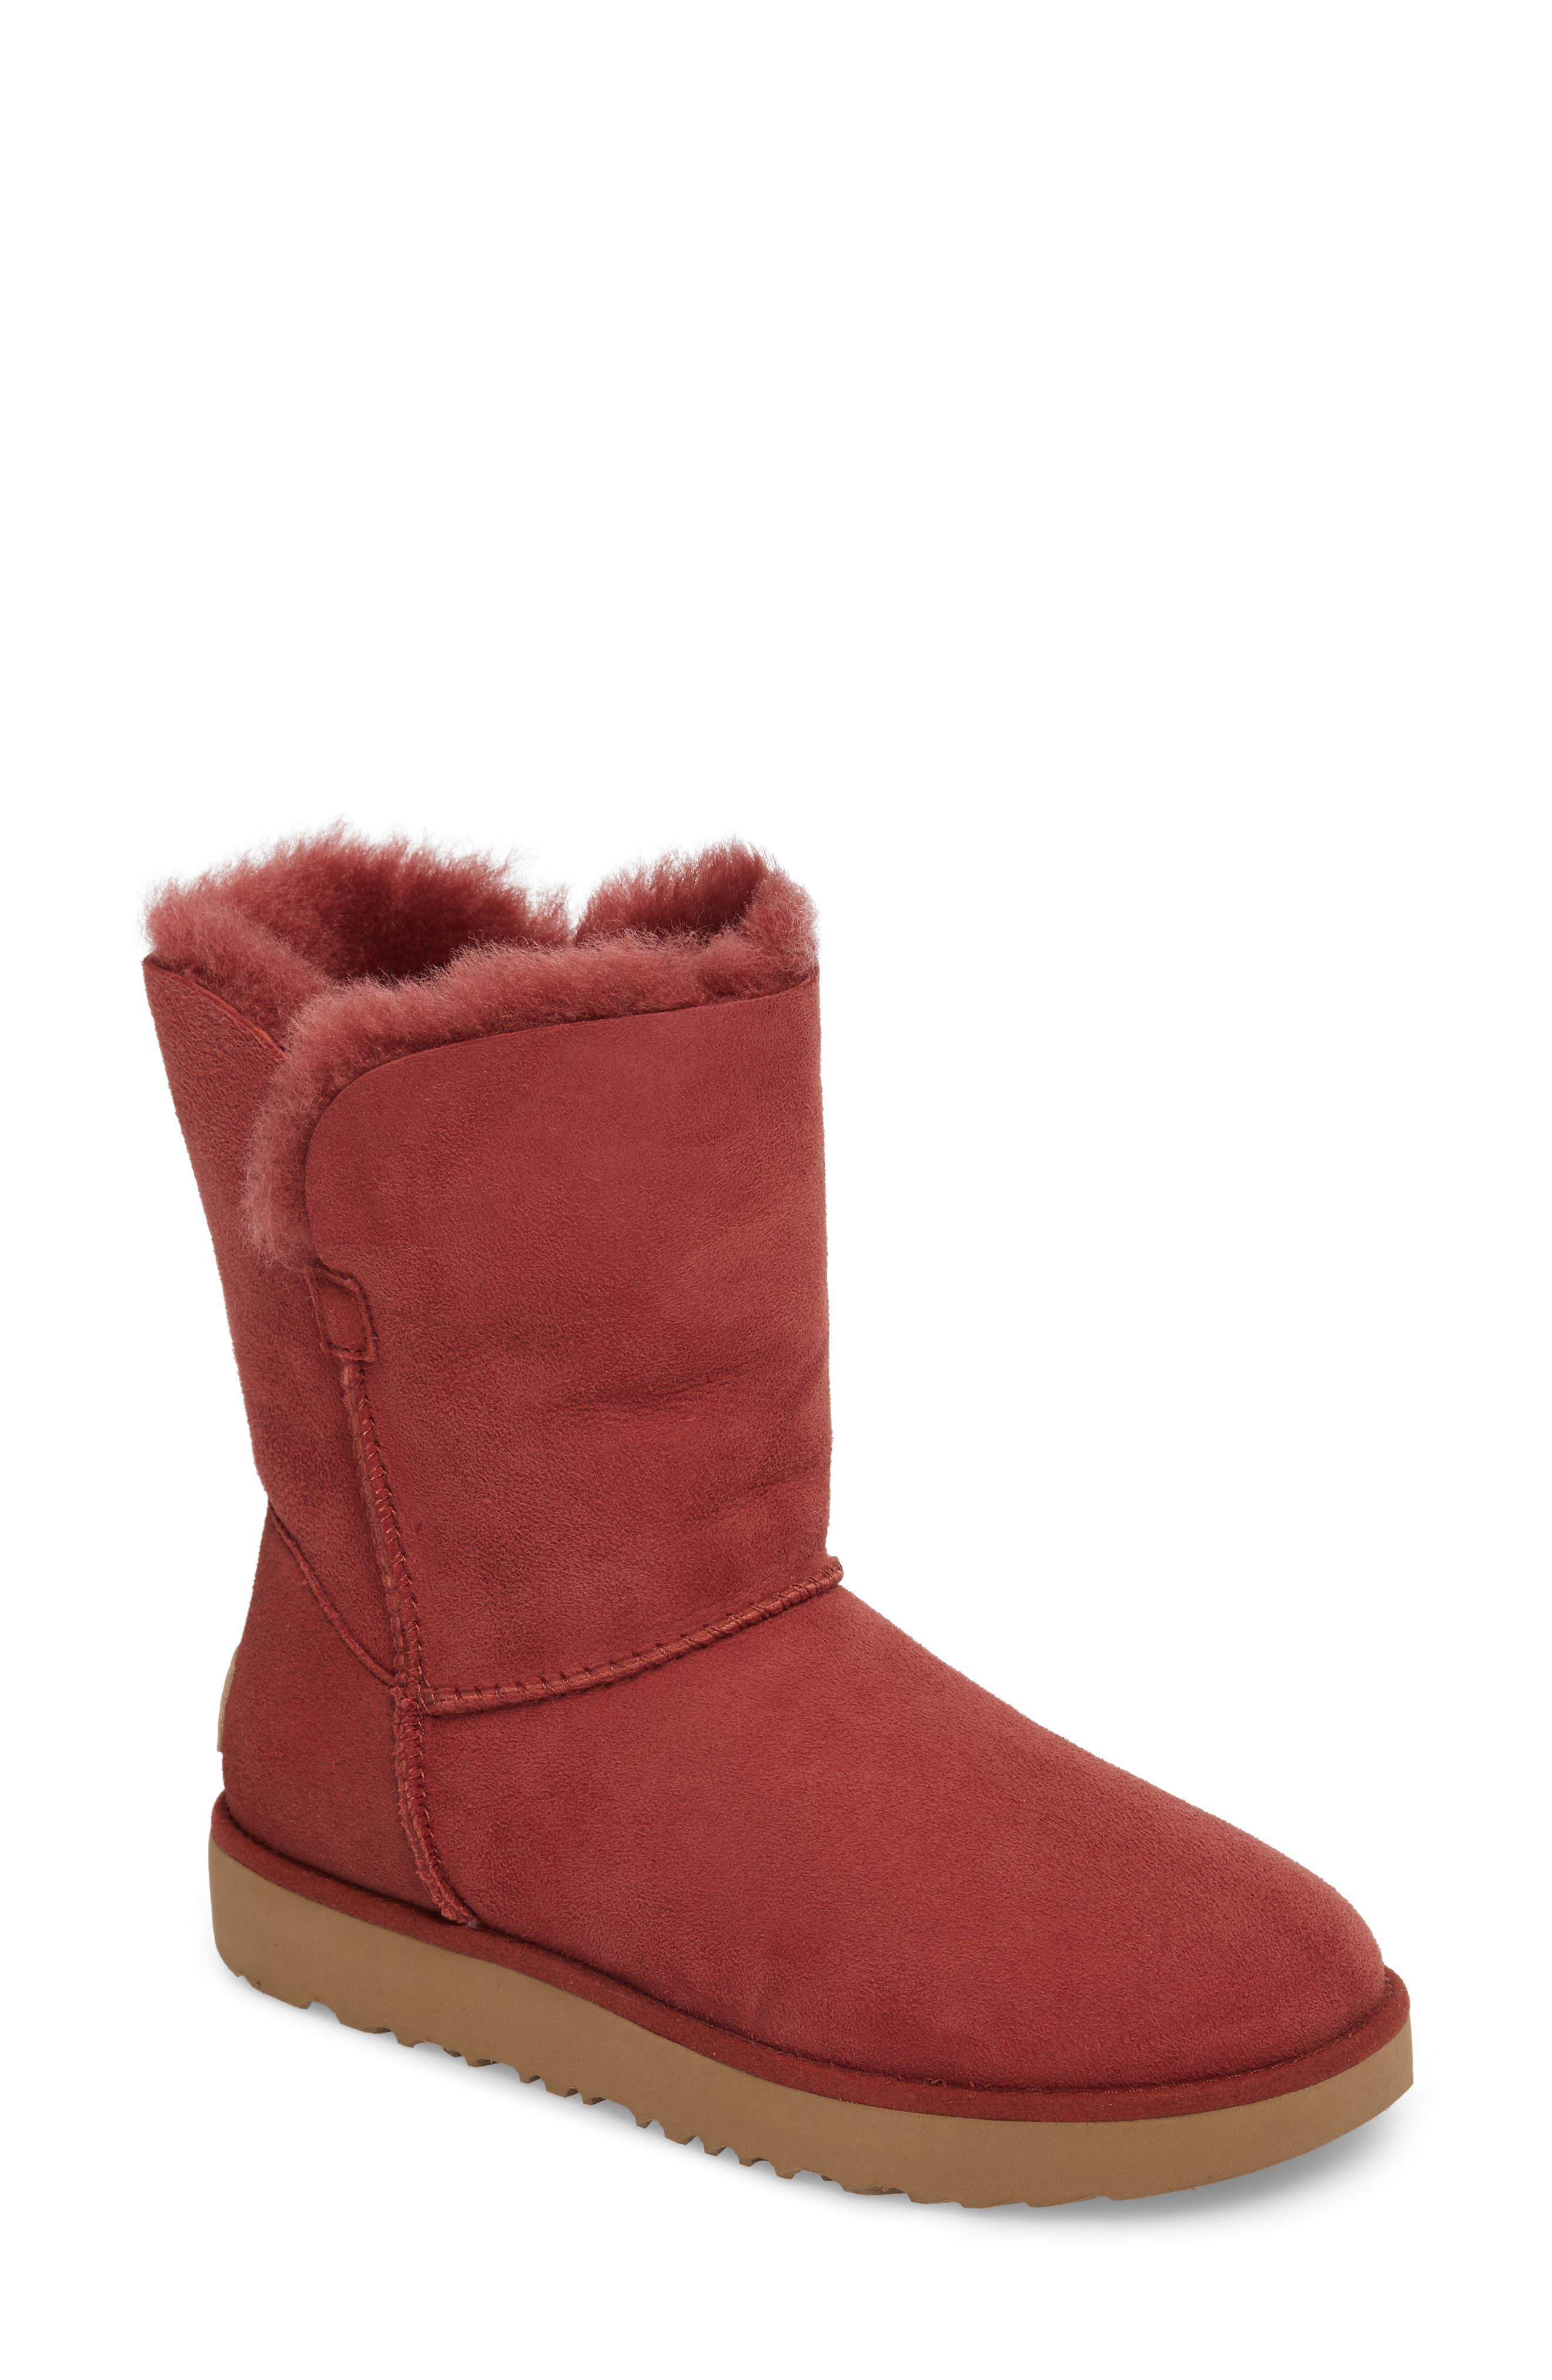 Classic Cuff Short Boot,                         Main,                         color, Red Clay Suede